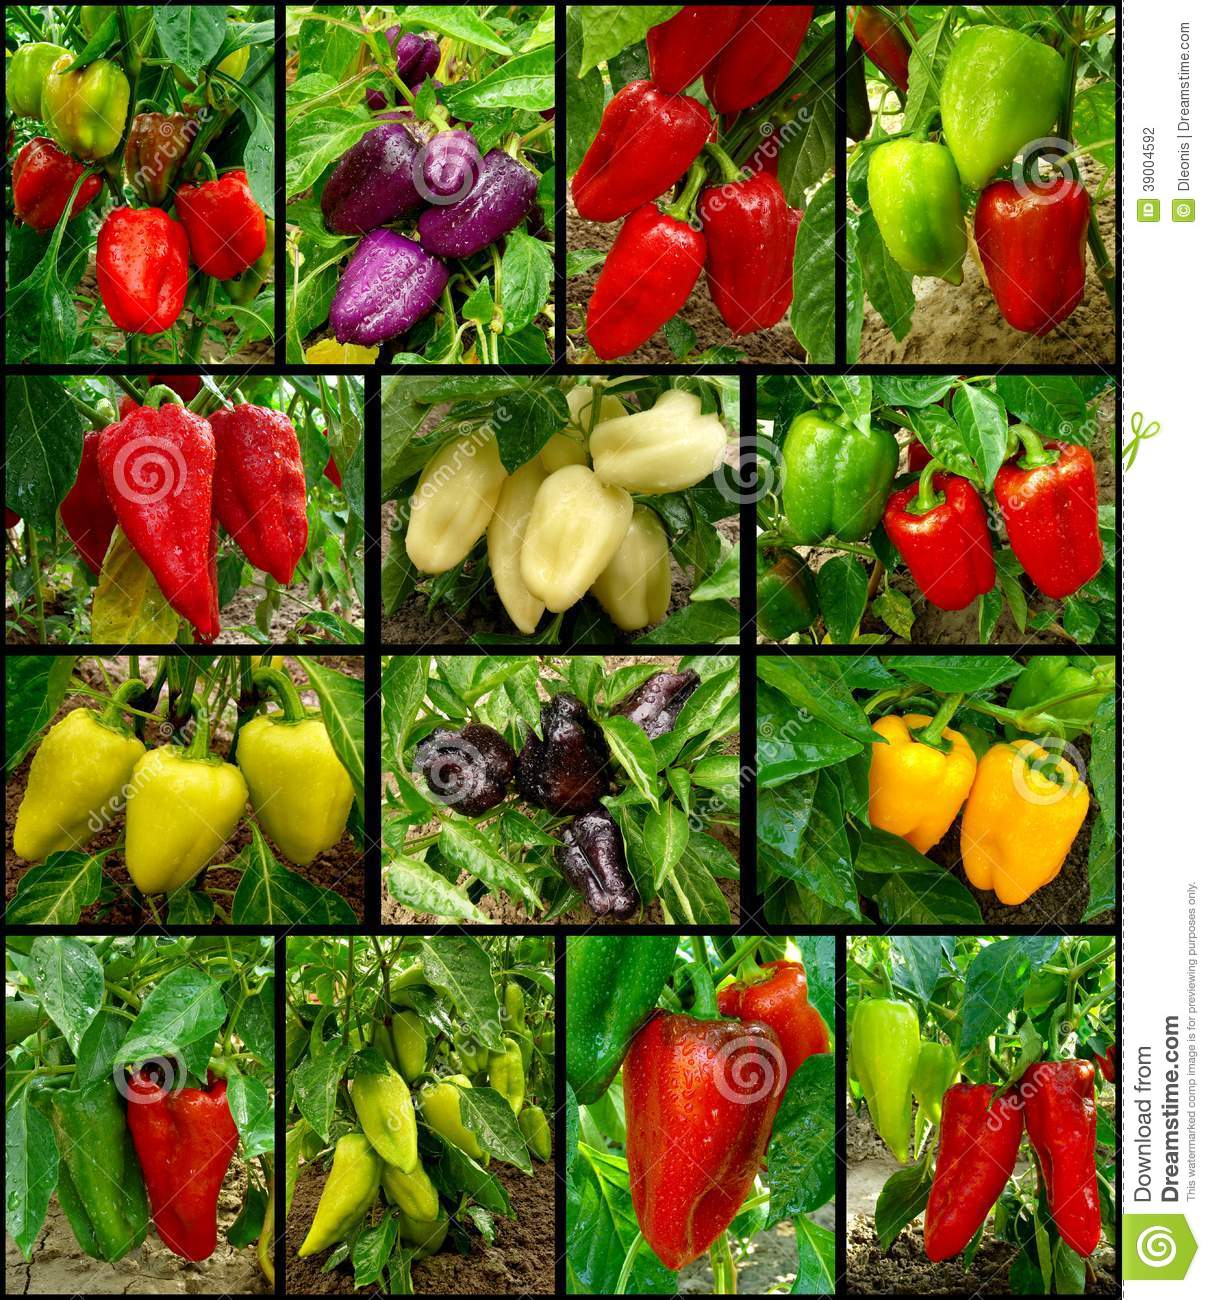 What varieties of sweet pepper can be grown in a home garden and how 74